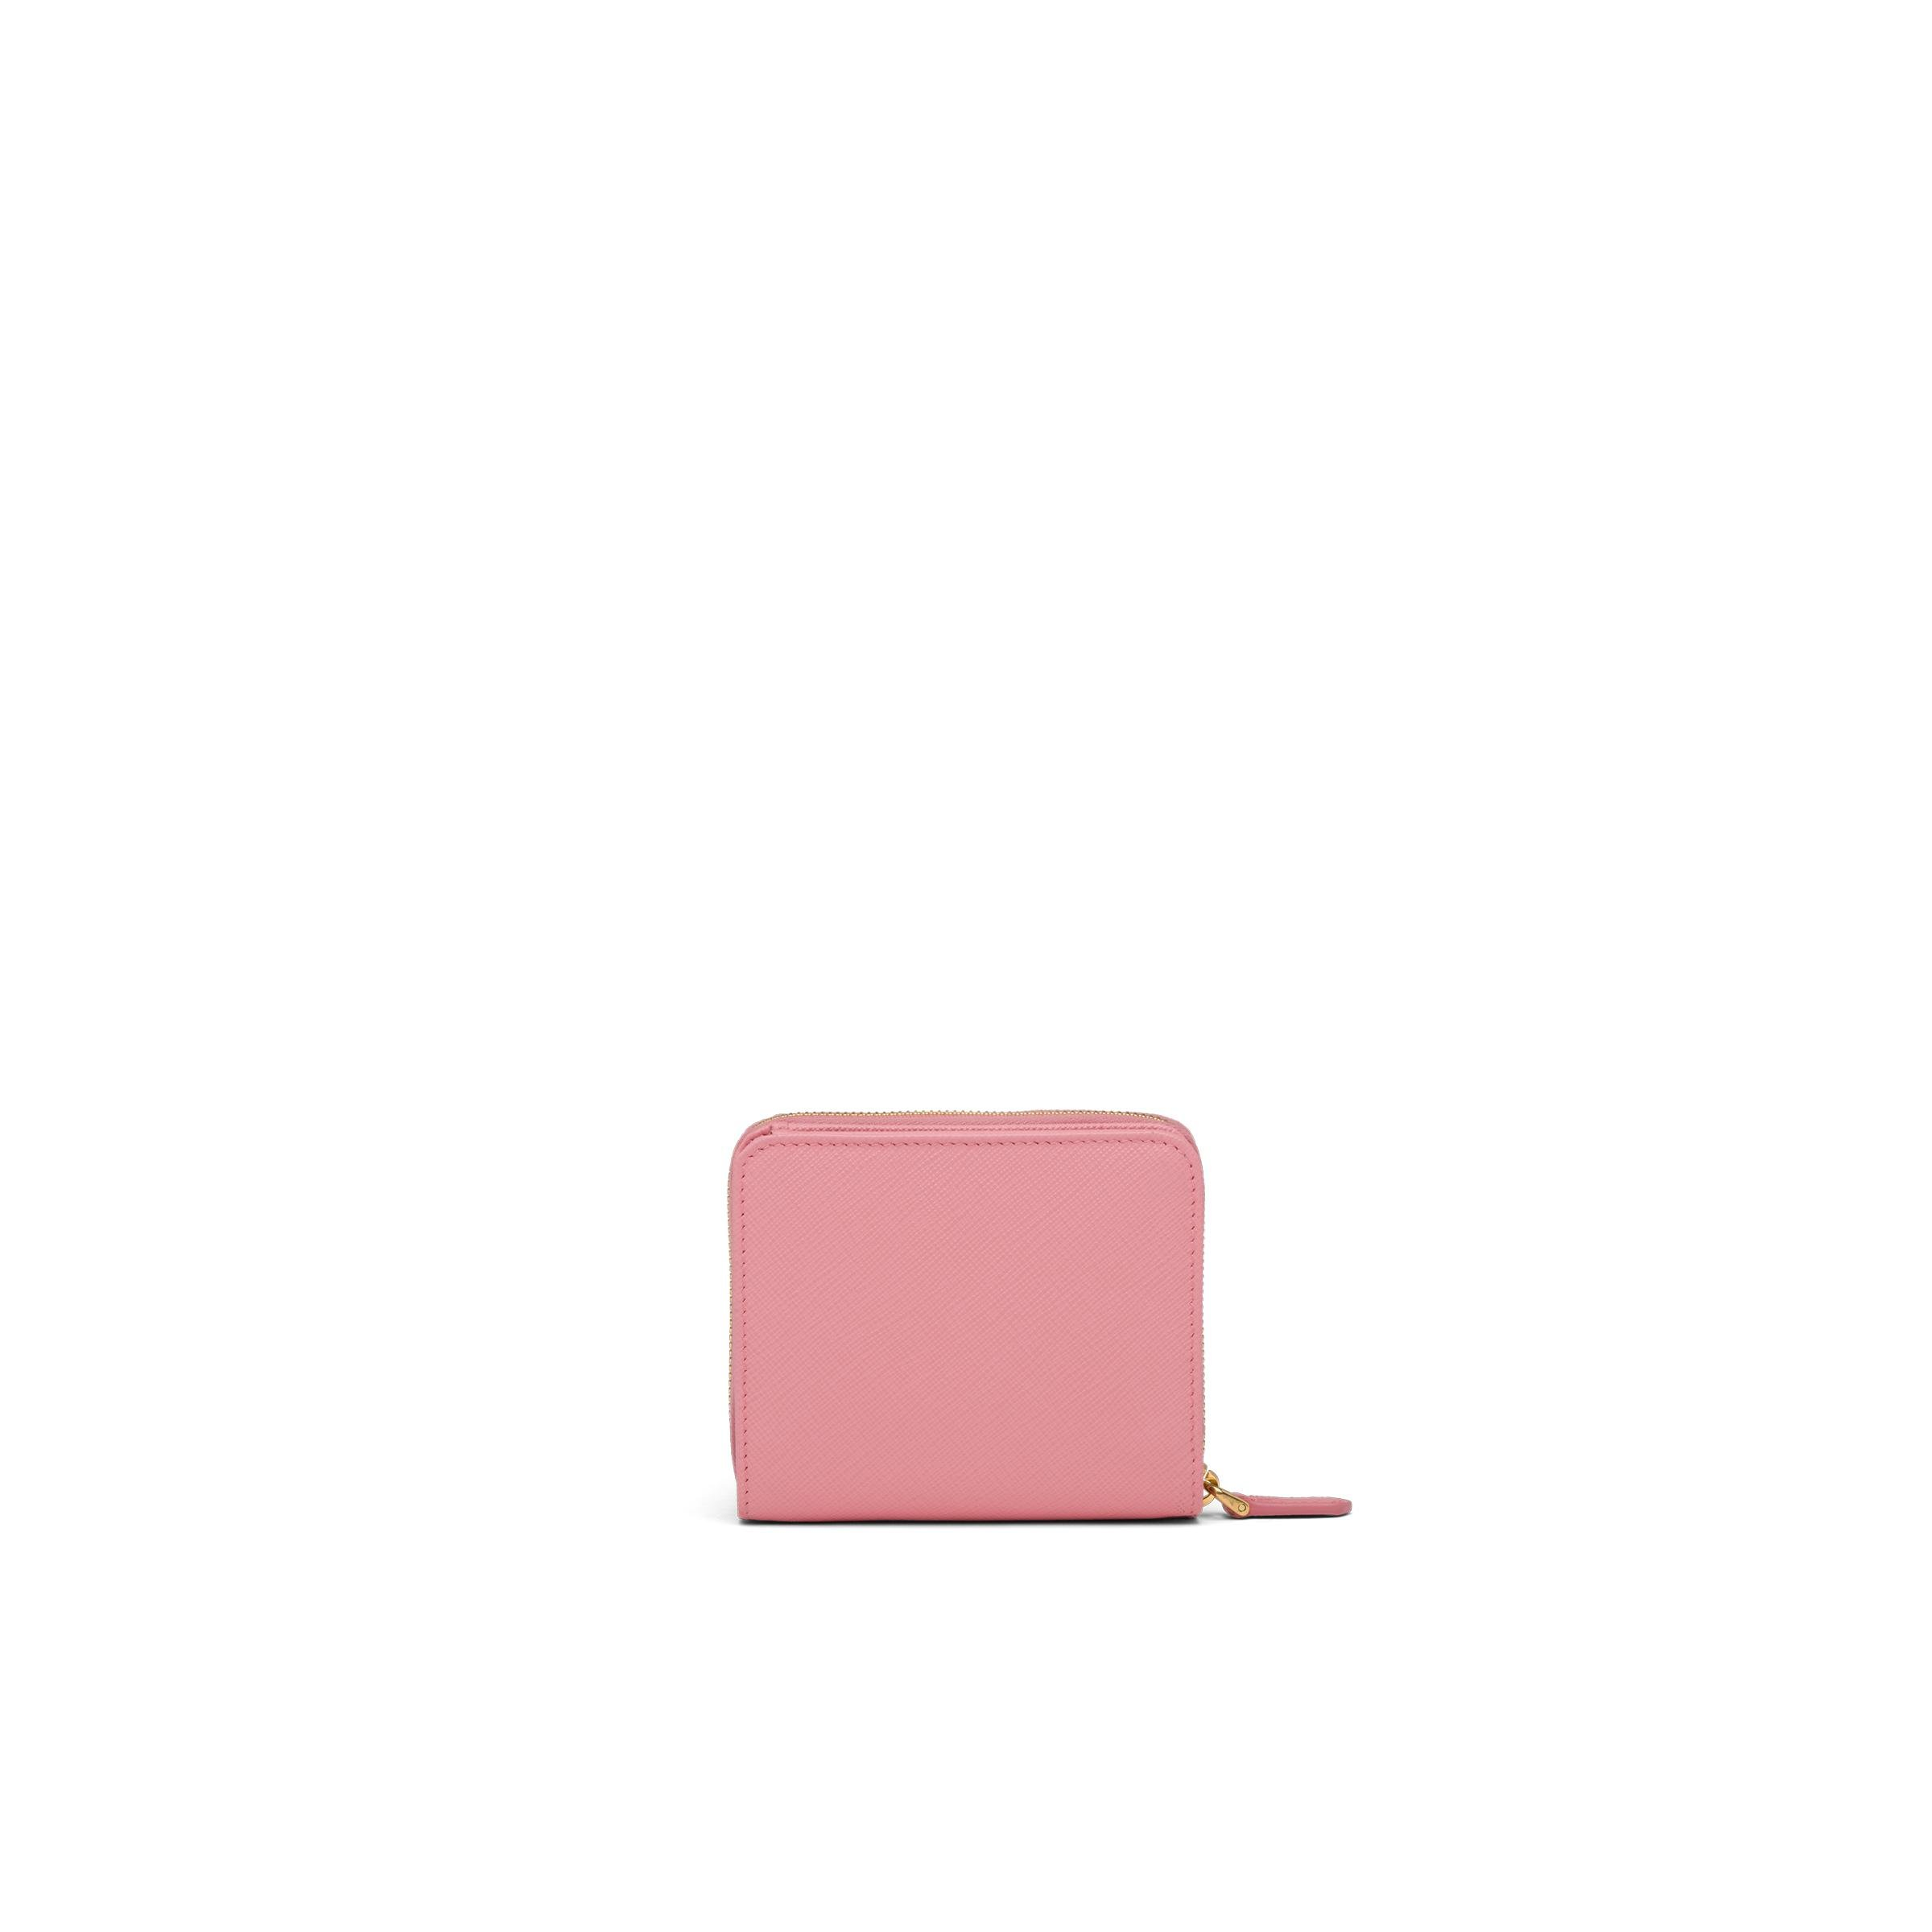 Small Saffiano Leather Wallet Women Petal Pink 4